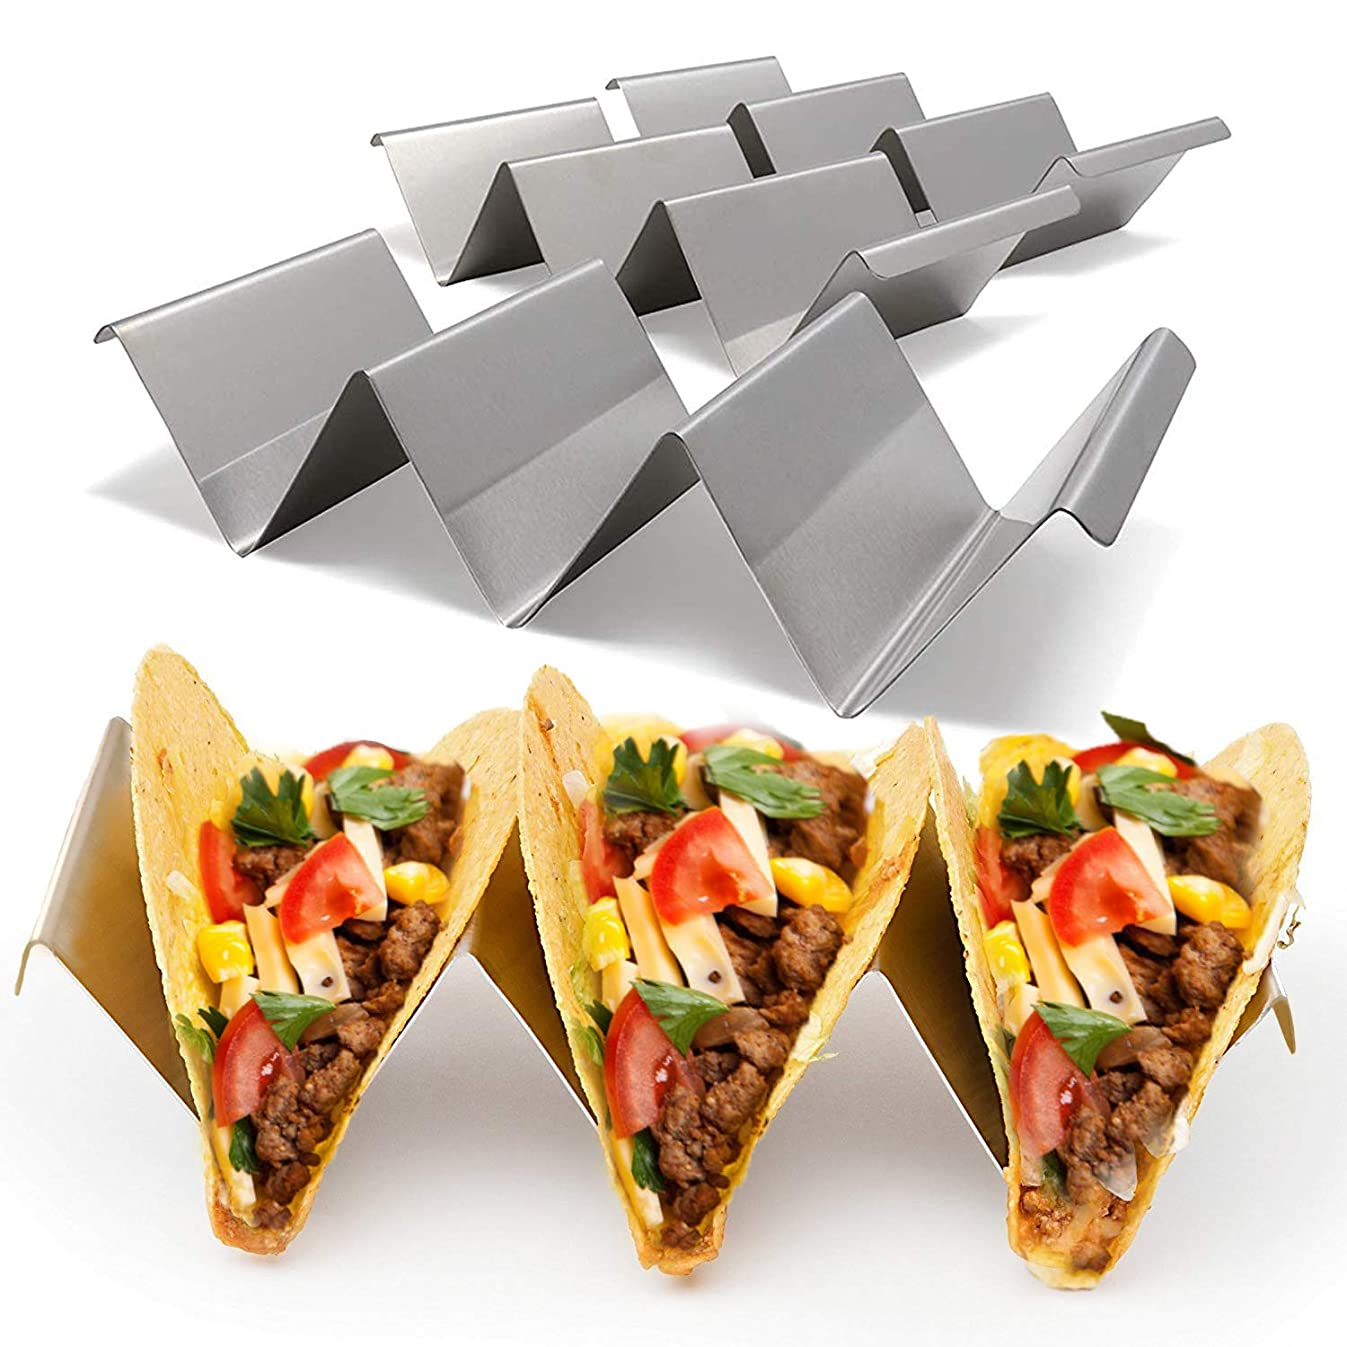 "Taco Holder, Stainless Steel Taco Stand, Taco Truck Tray Style, Rack Holds Up to 3 Tacos Each Oven Safe for Baking, Dishwasher and Grill Safe, 4"" x 8"", by Plunack (4 PACK)"